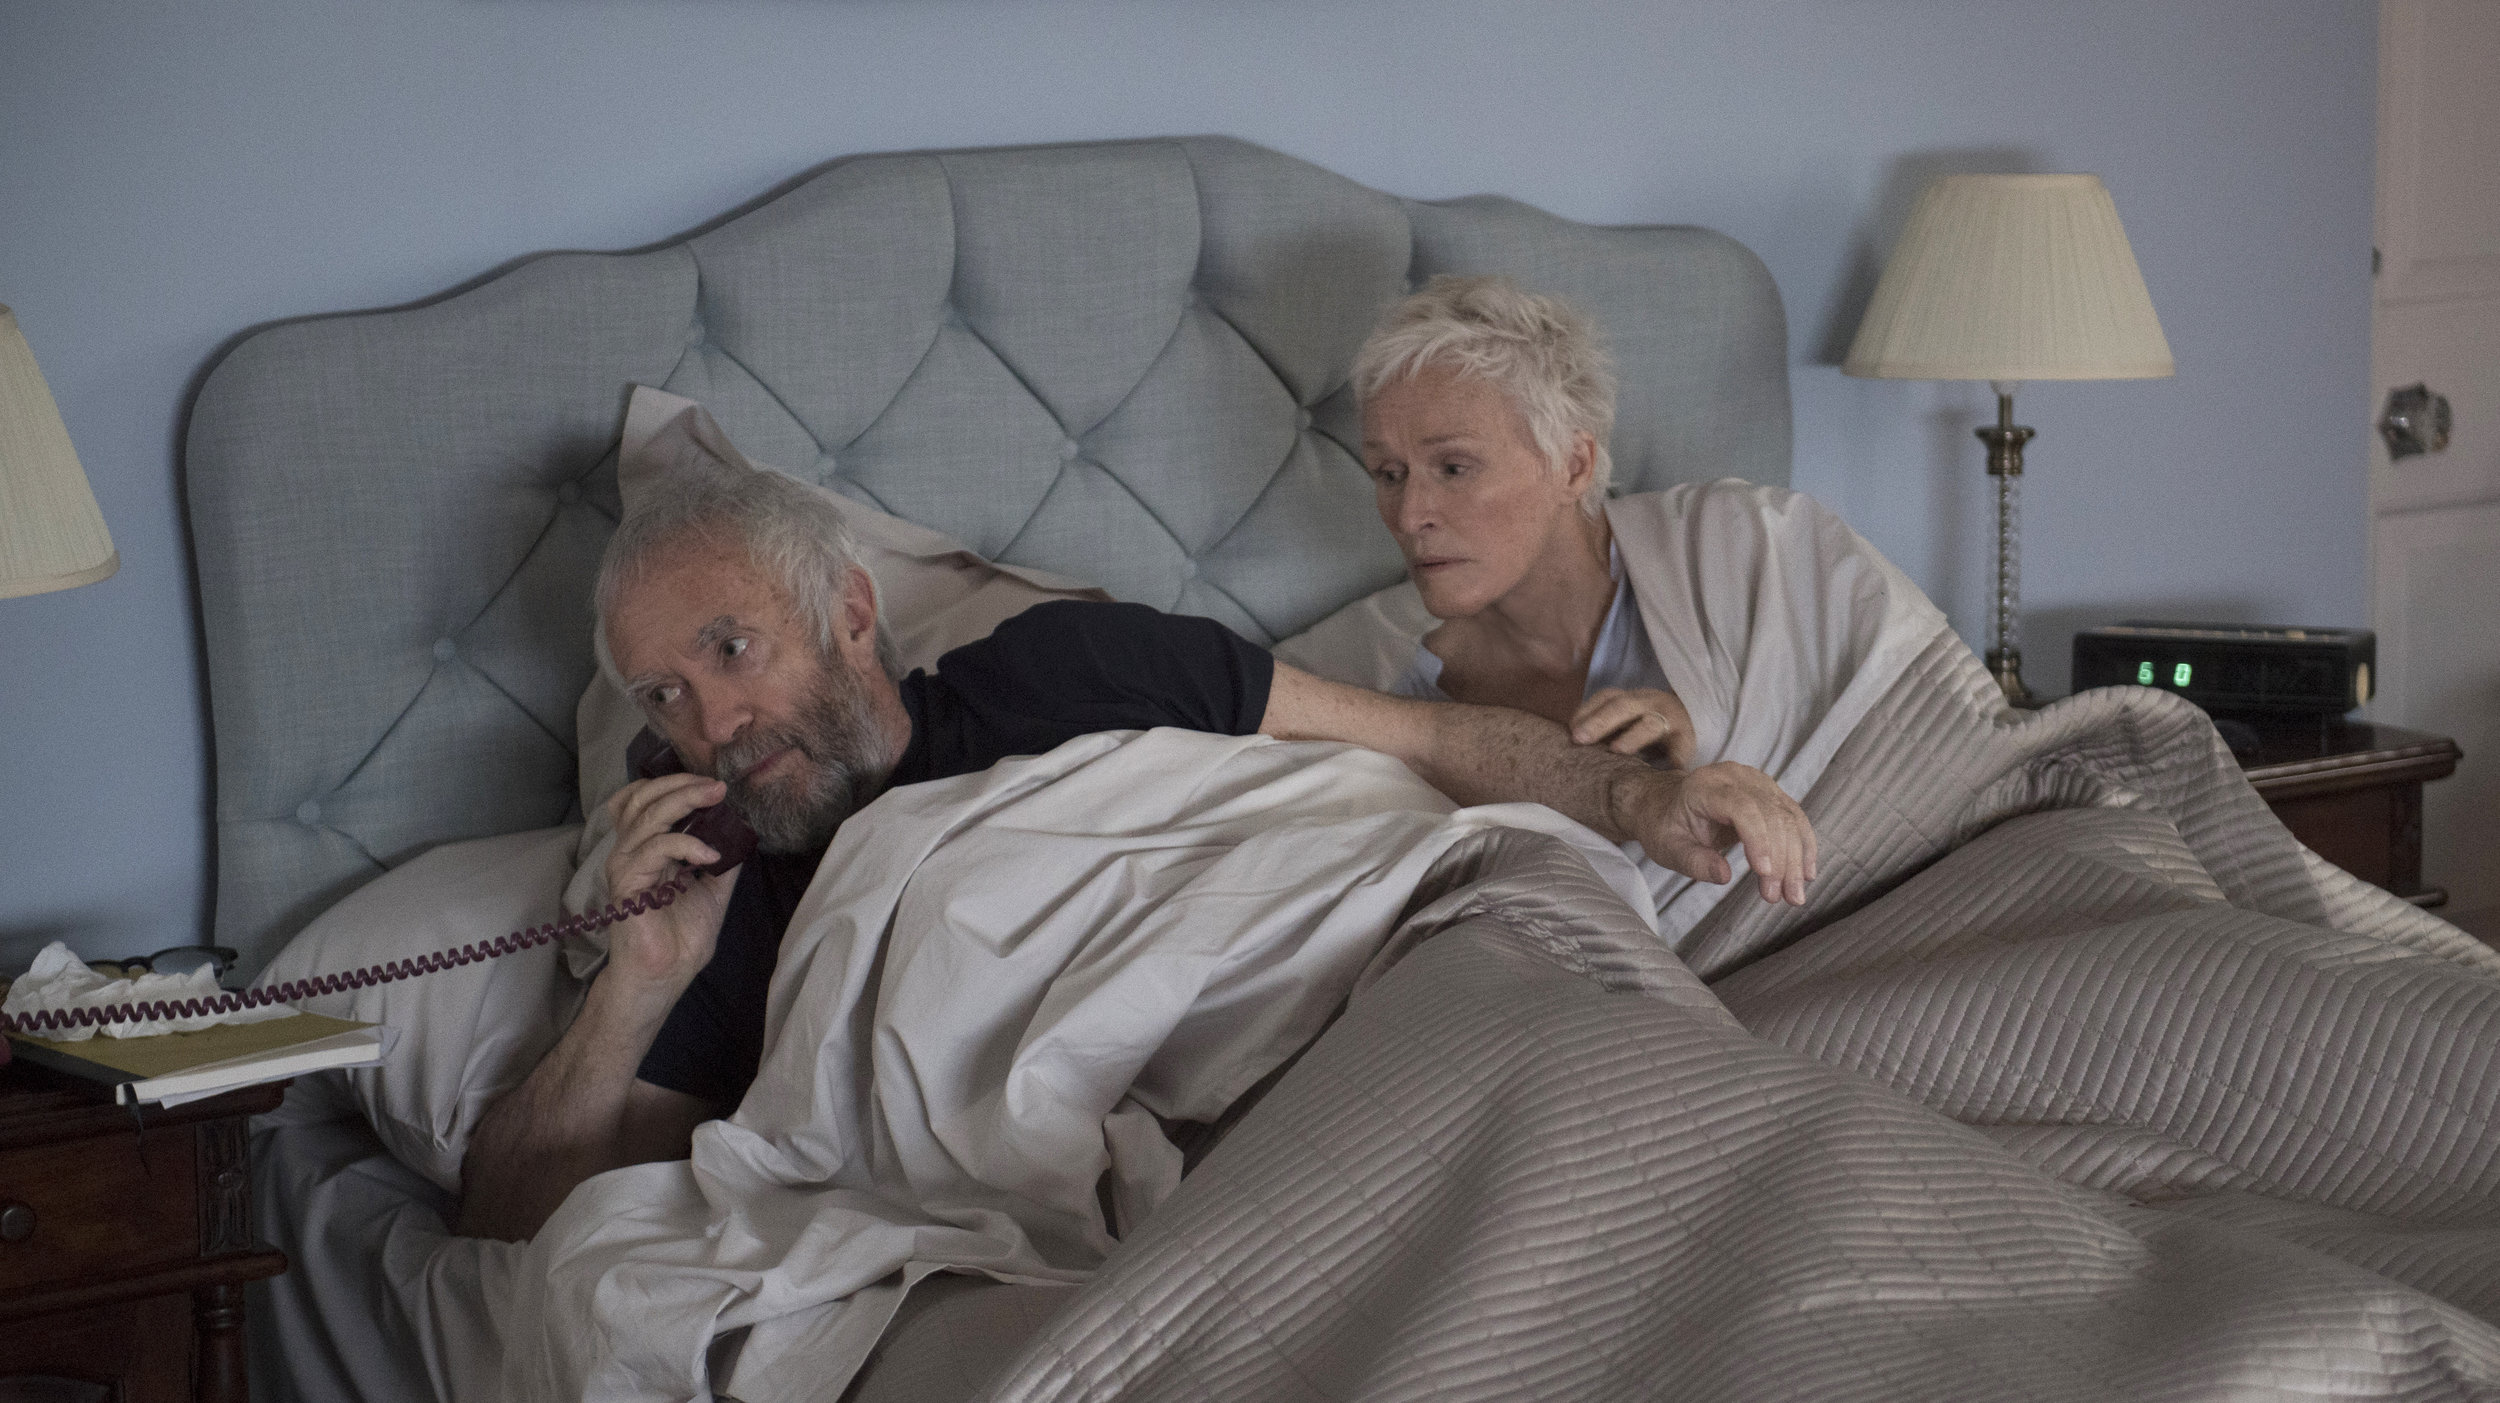 """Joan Castleman (Glenn Close, right) listens as her husband, novelist Joe Castleman (Jonathan Pryce), gets news that he has won the Nobel Prize for Literature, in a scene from the drama """"The Wife."""" (Photo by Graeme Hunter, courtesy of Sony Pictures Classics)"""